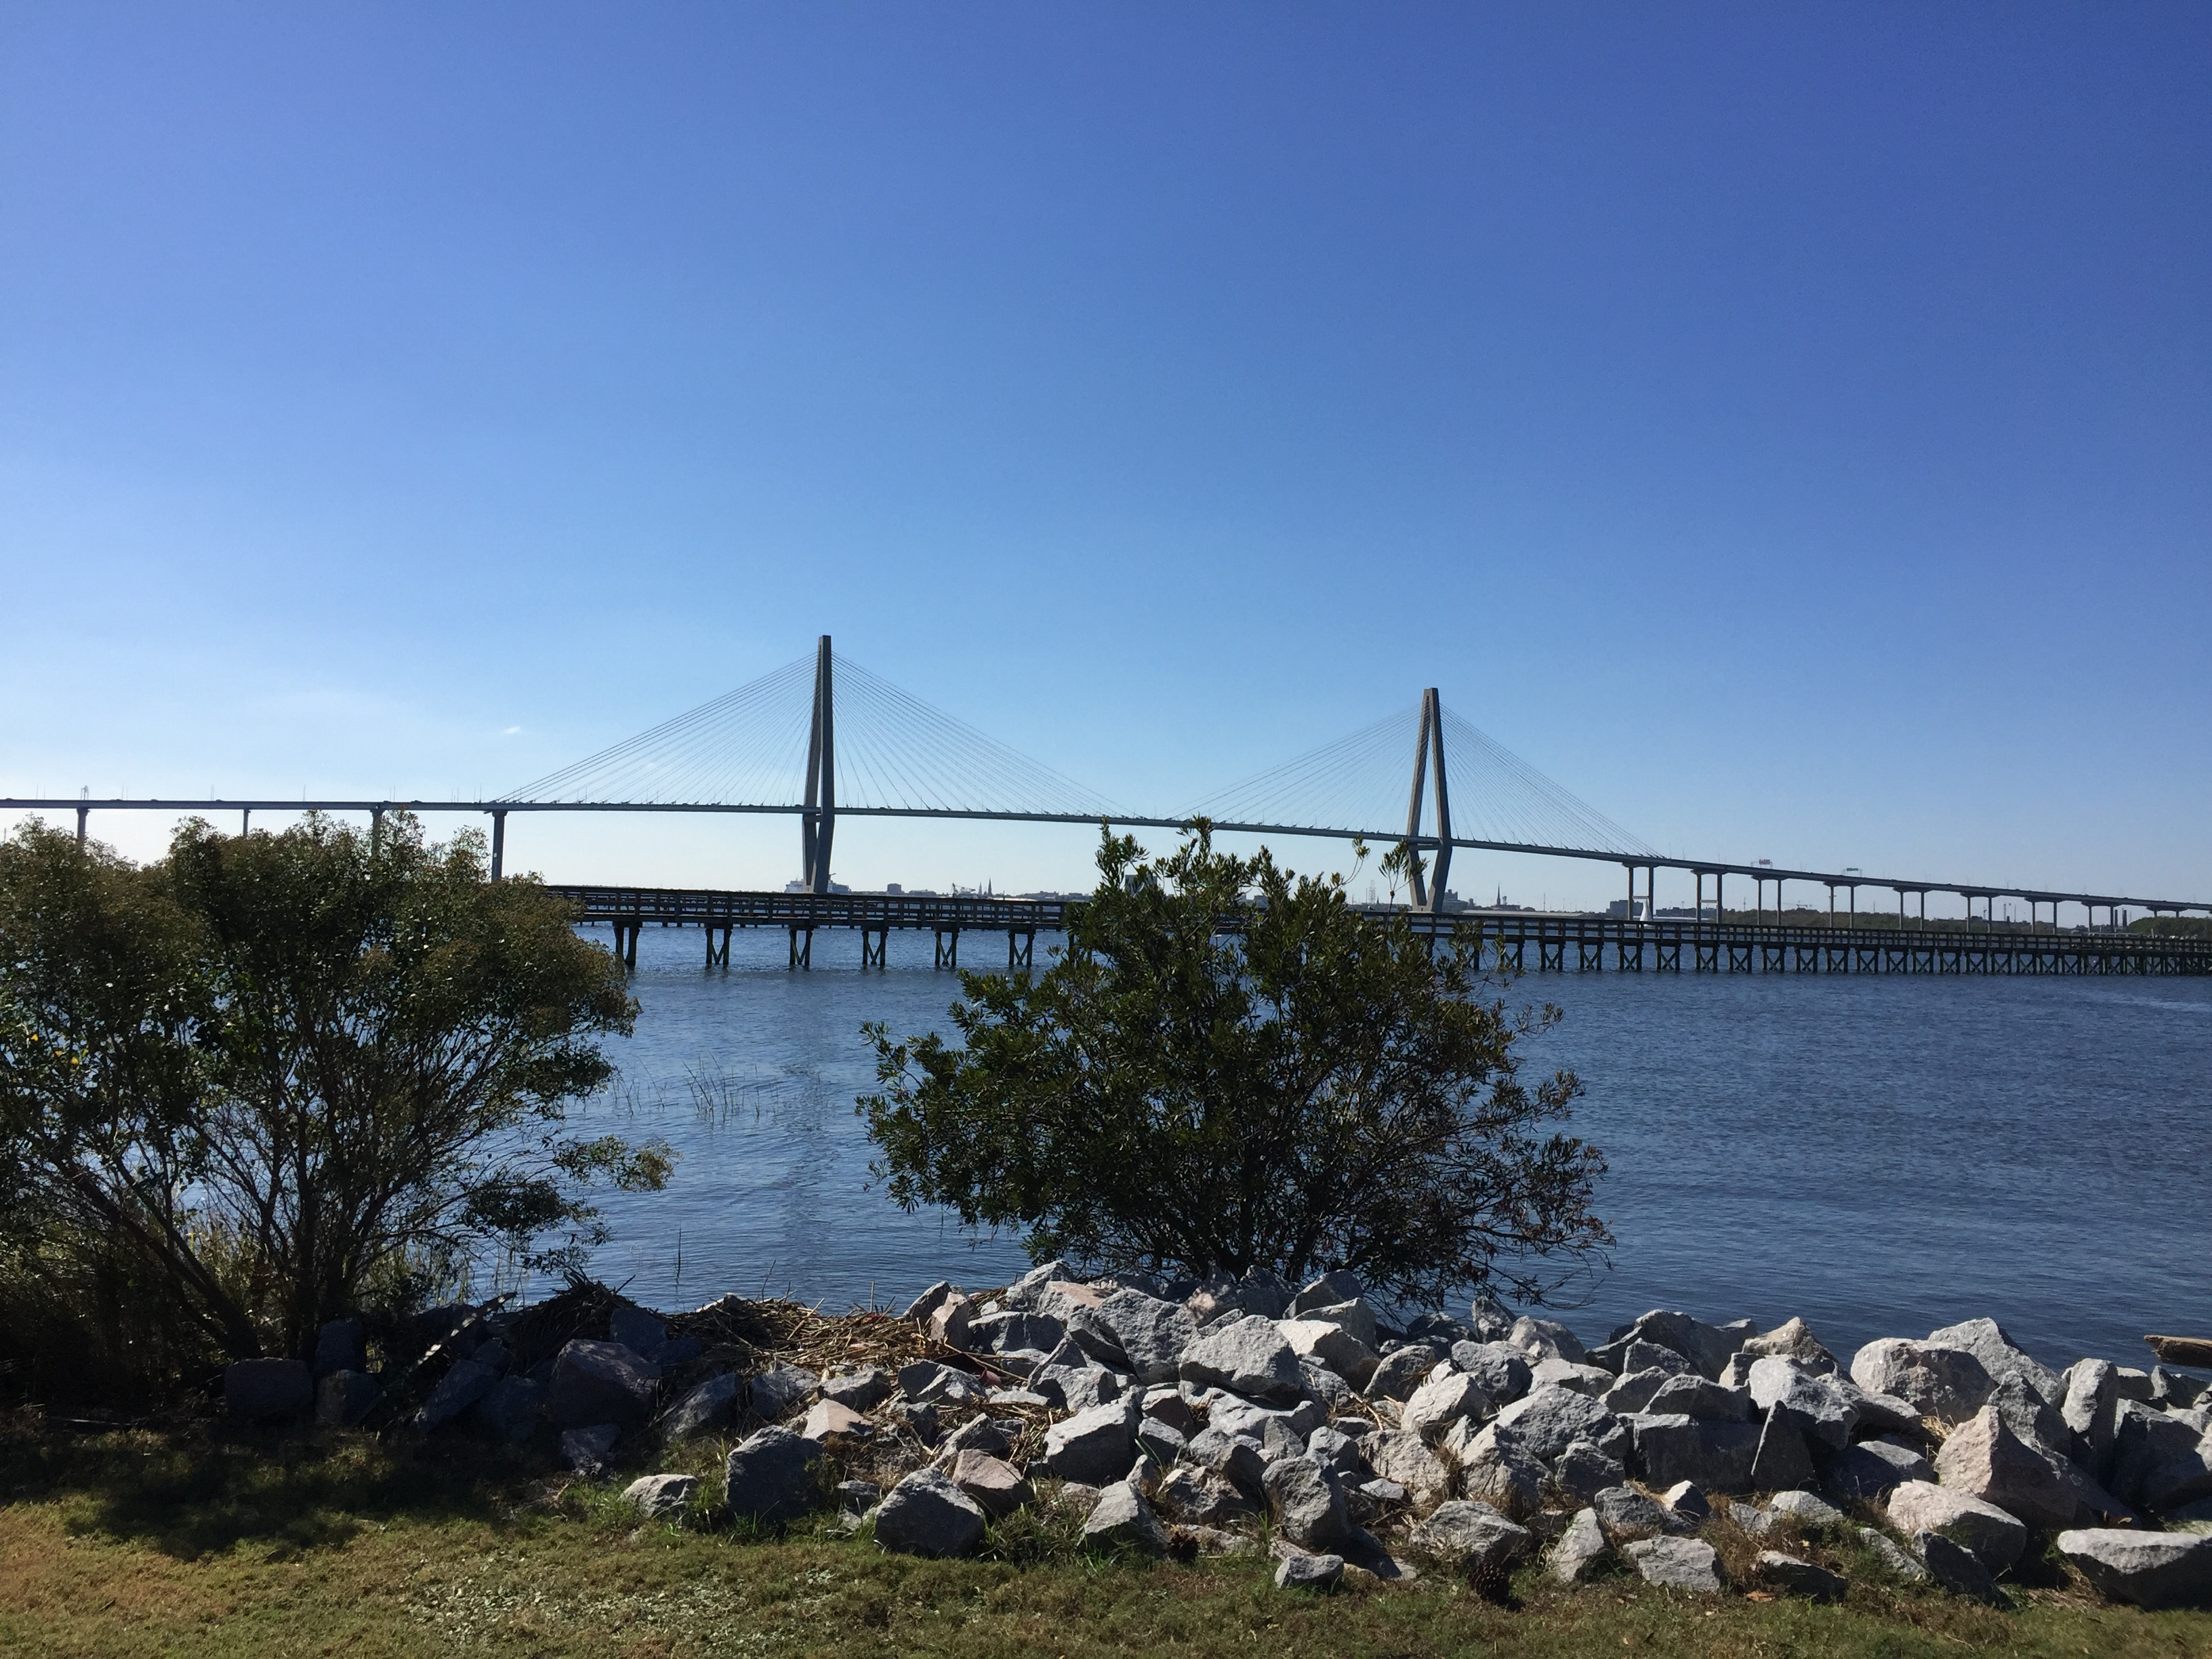 Ravenel from Remleys Point